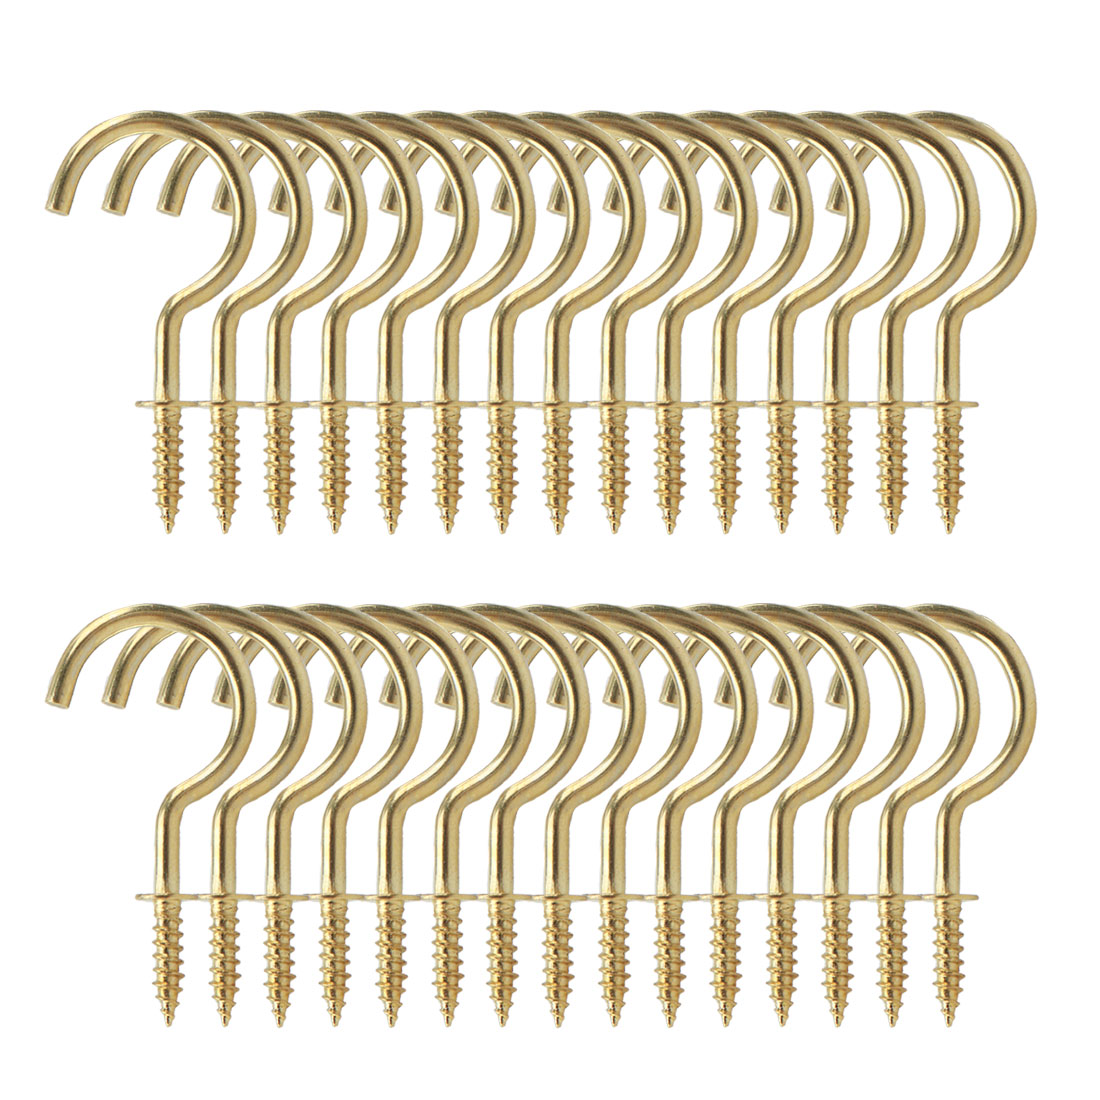 30pcs Cup Ceiling Hooks 1-1/2 Inch Brass Plating Metal Screw for Home Office Cup